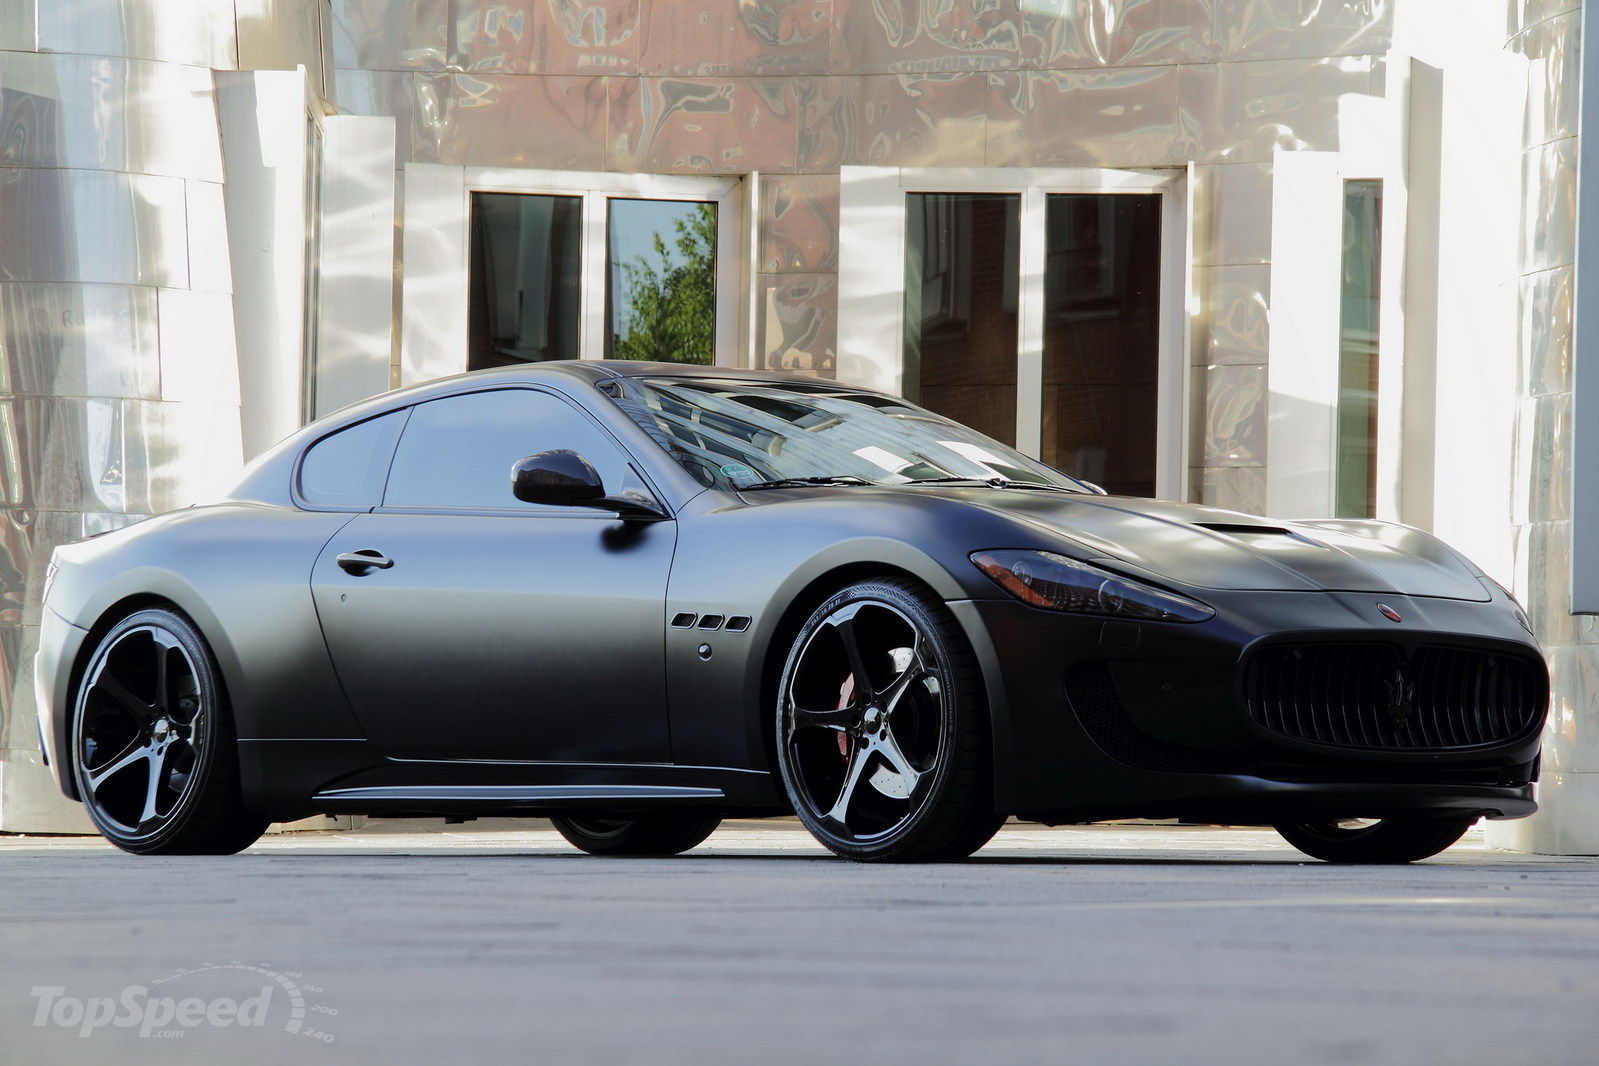 2011 Maserati Granturismo S Superior Black Edition By Anderson Germany on aston martin vantage exhaust